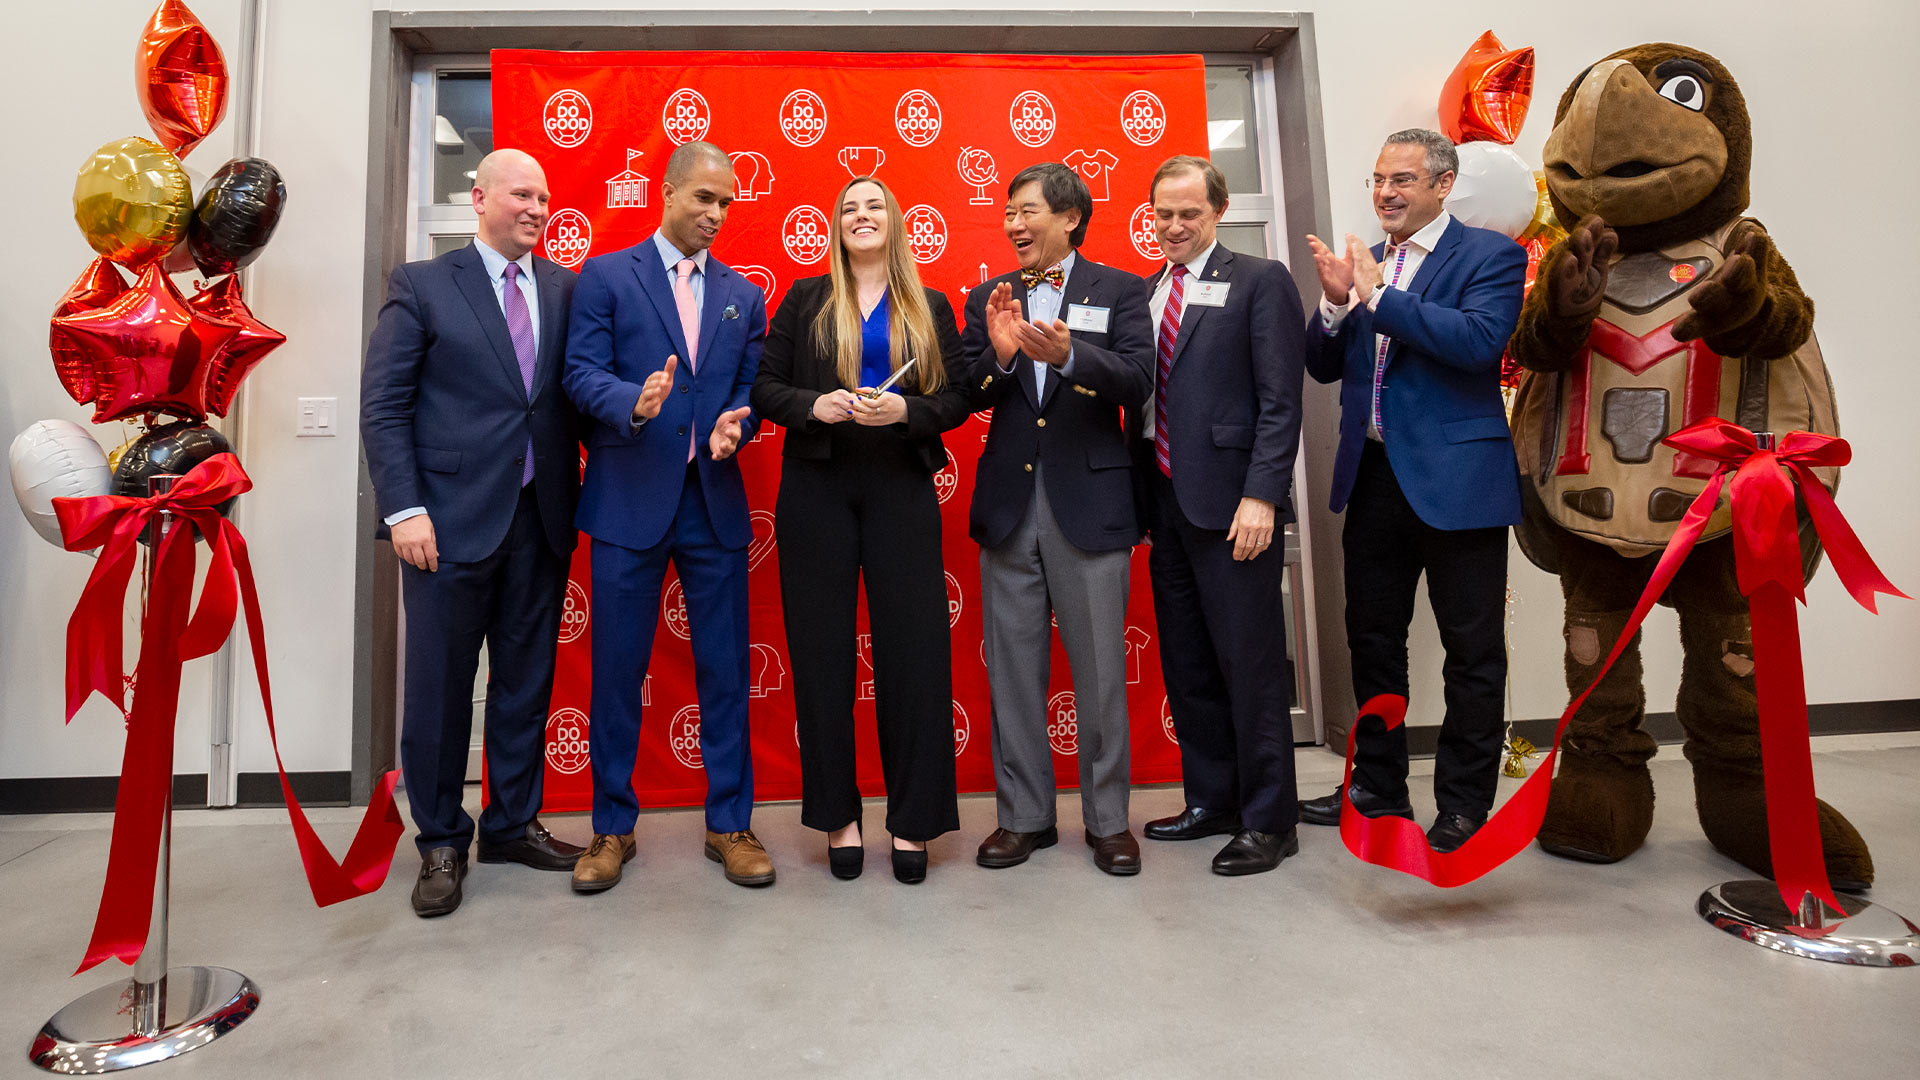 The ribbon flutters to the floor at the grand opening of the Do Good Accelerator last night. From left, Bob Grimm, Levenson Family Chair in Philanthropy and Nonprofit Leadership and Do Good Institute director, Khalil Kettering M.P.M. '15, CEO, District Stormwater and Do Good Council member, (holding scissors) Natalia Ochman '19, founder of FLAME, UMD President Wallace D. Loh, School of Public Policy Dean Robert Orr and David Rothschild, CEO of Rothschild Capital Partners. (Photo by Stephanie S. Cordle)